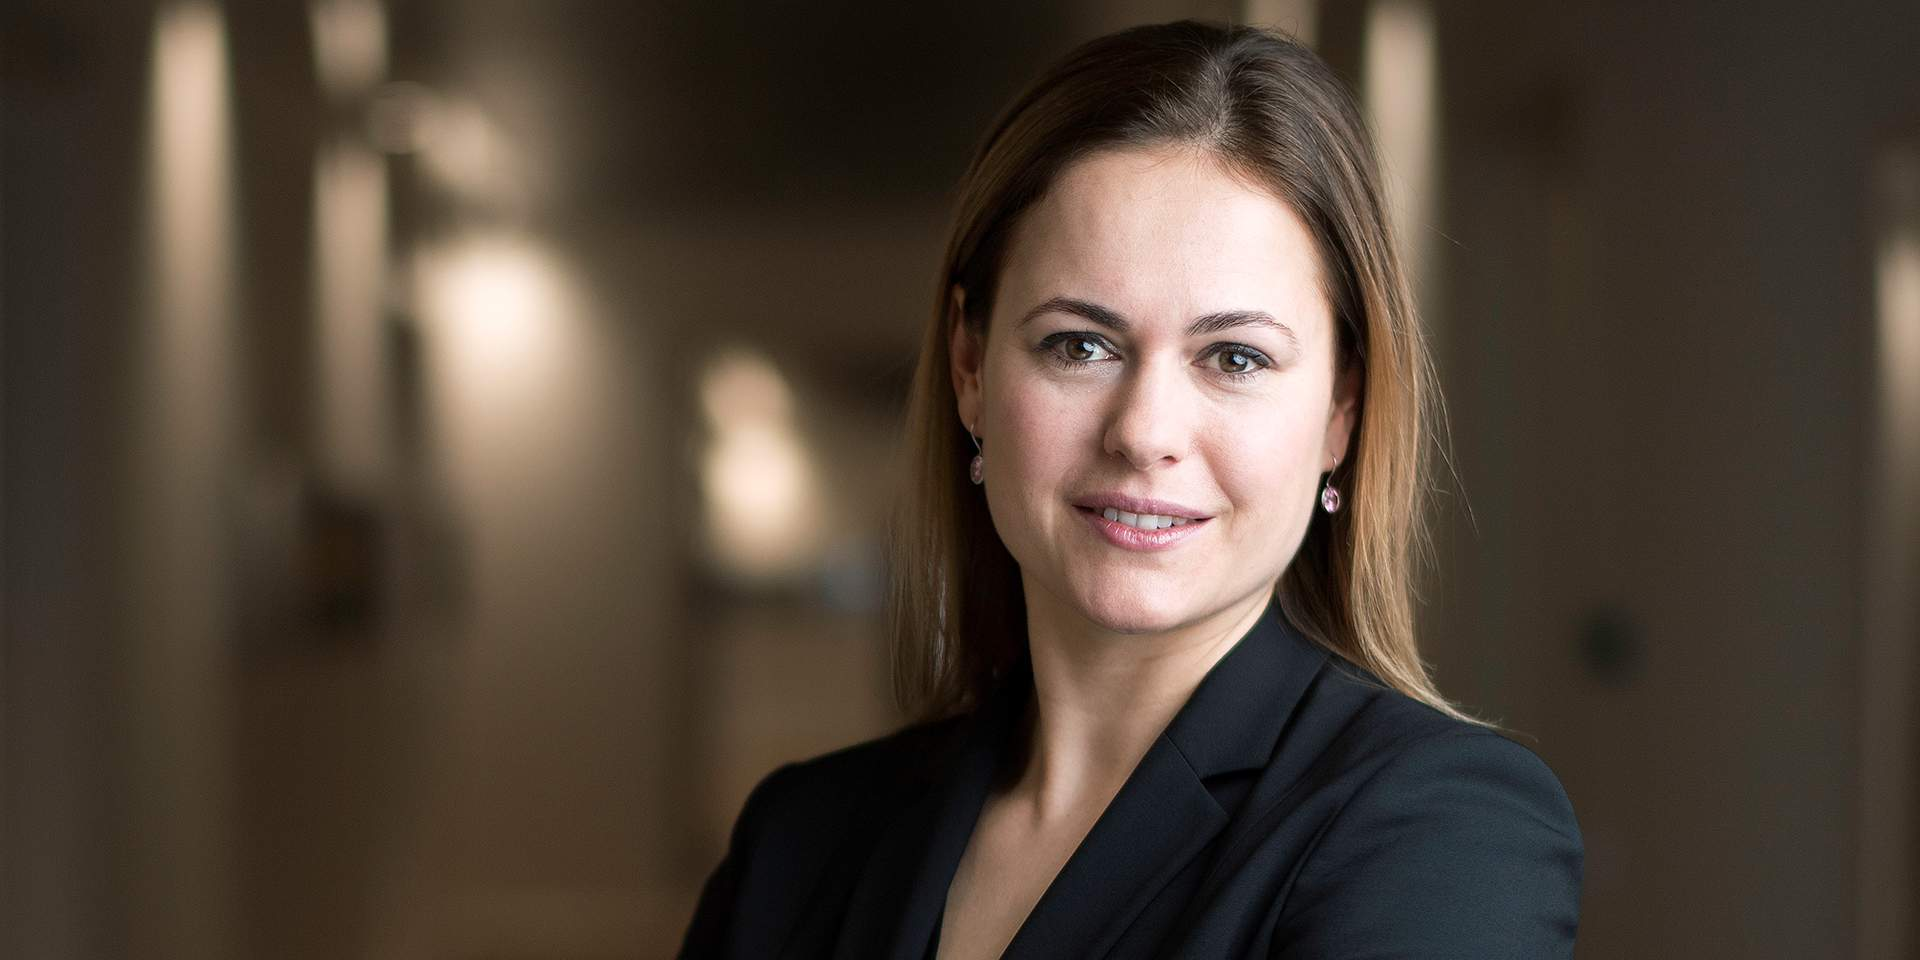 Profile of Anke Bridge Haux, Head of Digitalization & Products at Credit Suisse.